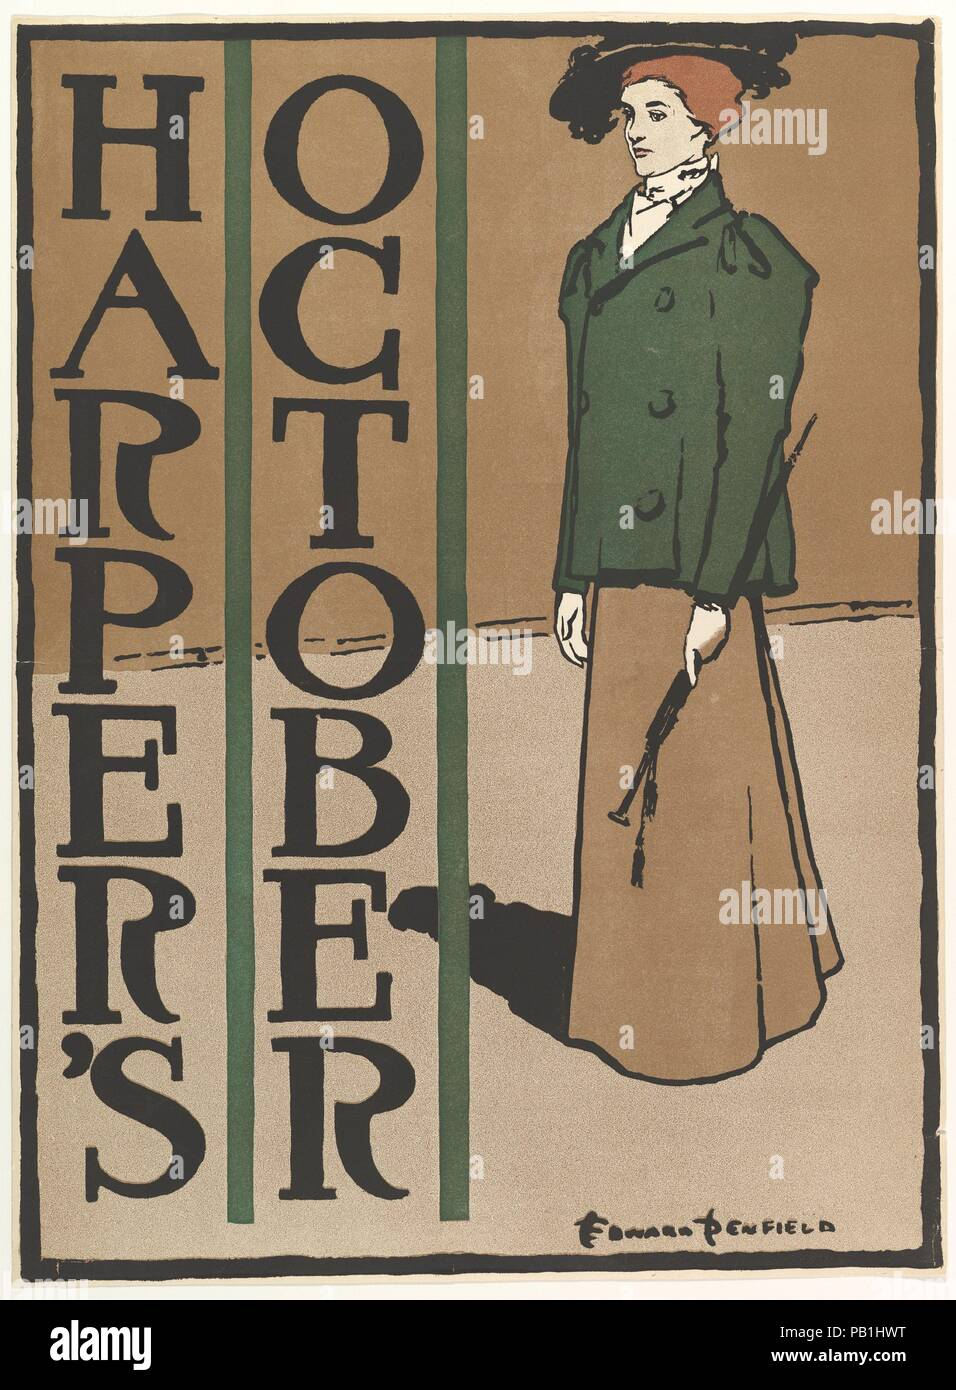 Harper's: October. Artist: Edward Penfield (American, Brooklyn, New York 1866-1925 Beacon, New York). Dimensions: Sheet: 19 7/16 × 14 5/16 in. (49.3 × 36.4 cm)  Image: 19 3/16 × 14 1/8 in. (48.7 × 35.9 cm). Publisher: Harper and Brothers, Publishers. Date: 1897. Museum: Metropolitan Museum of Art, New York, USA. - Stock Image